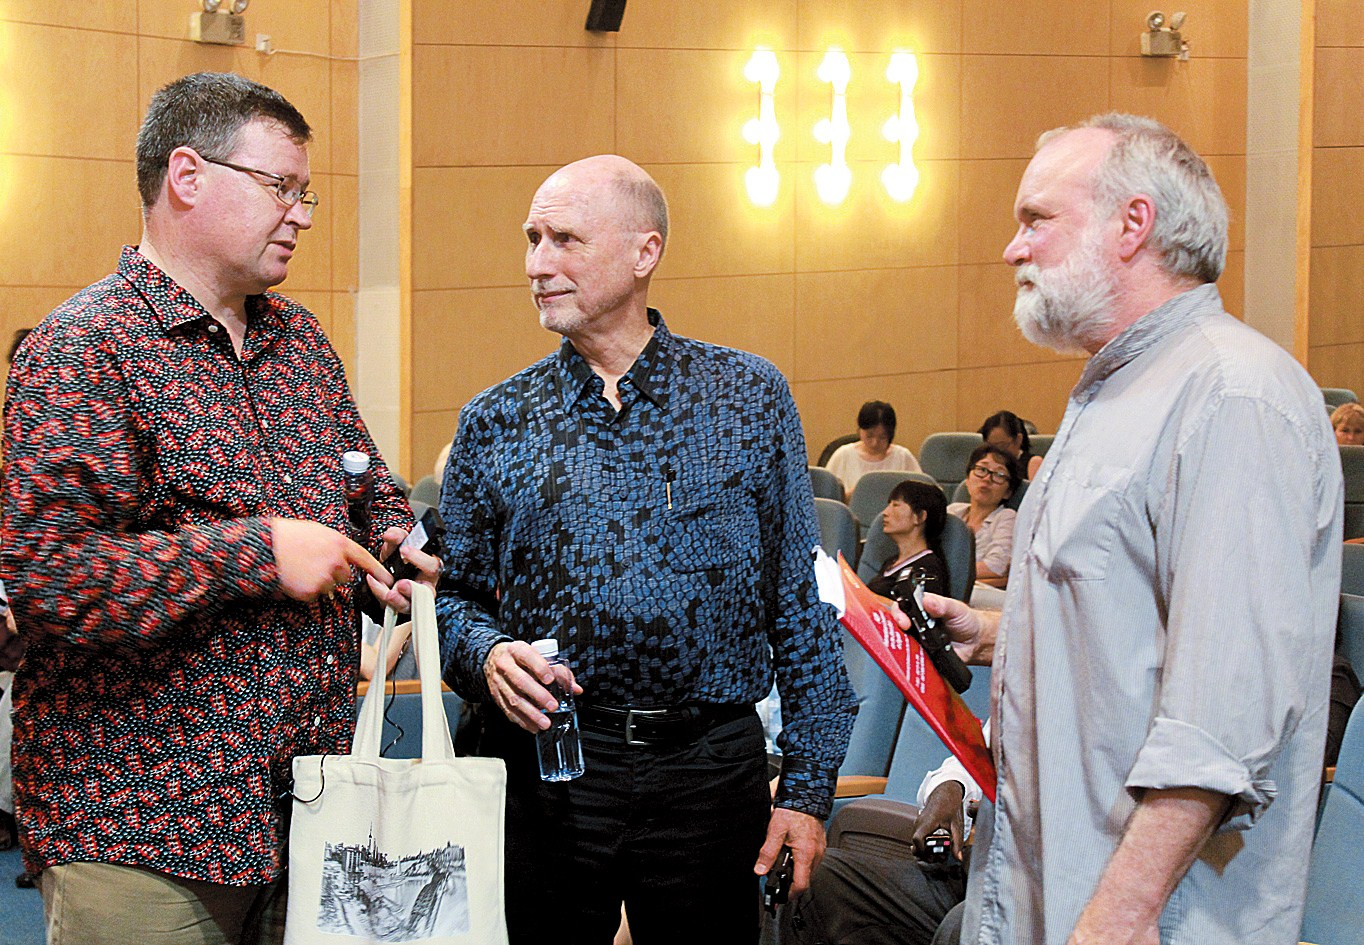 (From left) New Zealand poet and lecturer Jack Ross, American fiction writer Robert Olen Butler, and Canadian writer Mark A. Jarman at the conference